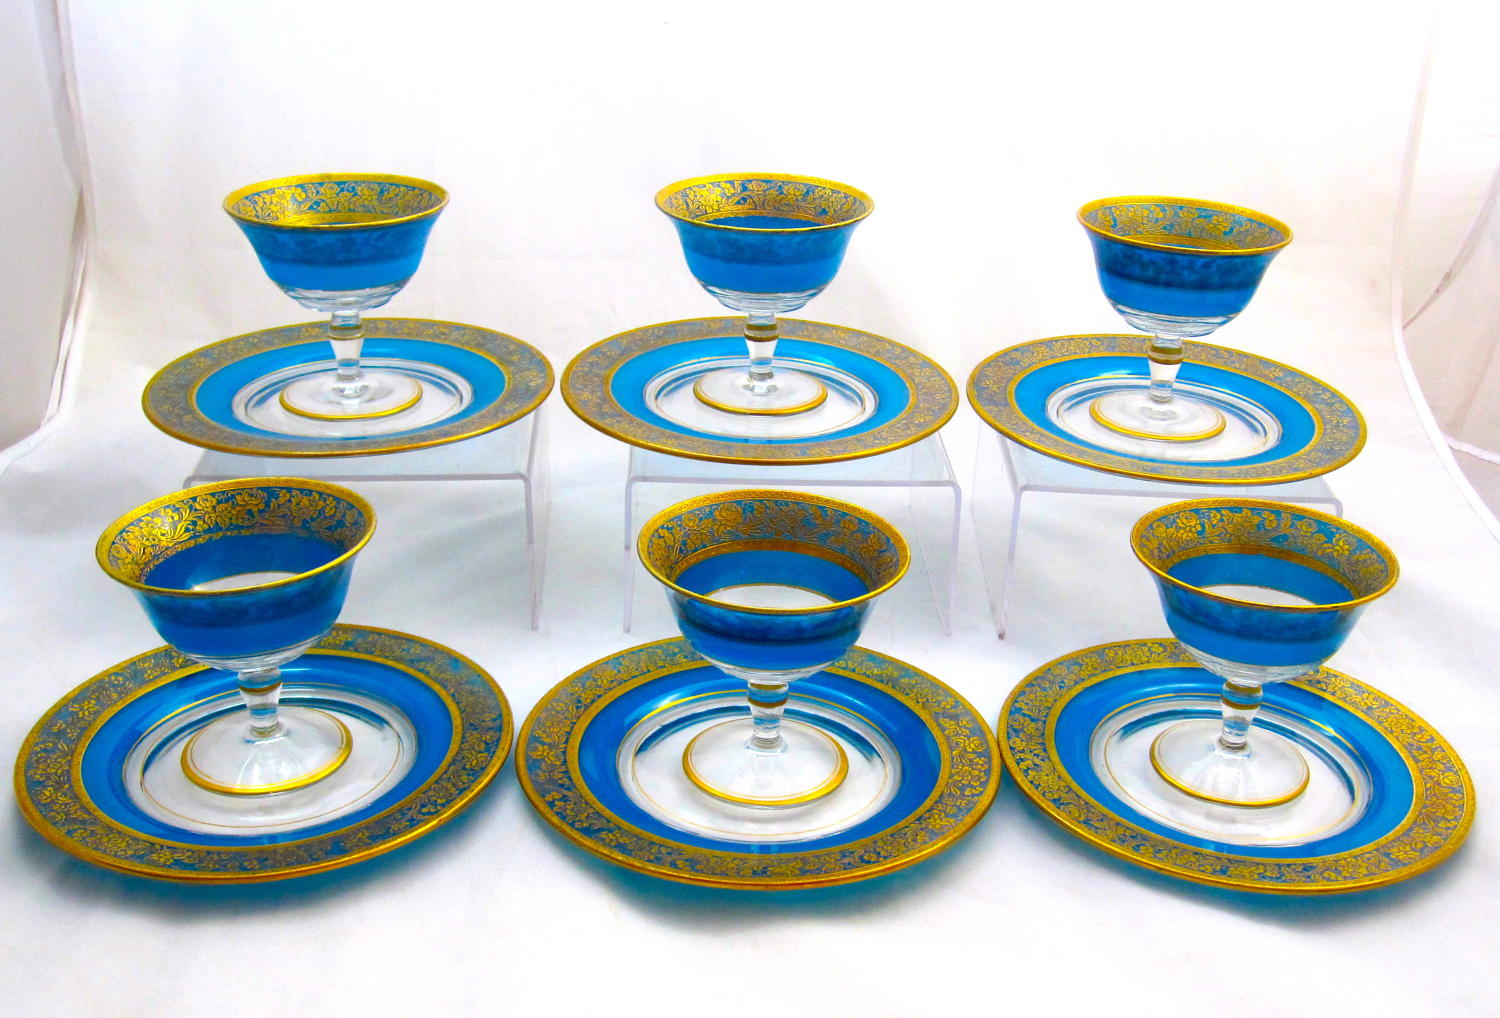 Antique Bohemian MOSER Blue and Gold Enamelled Dessert Set